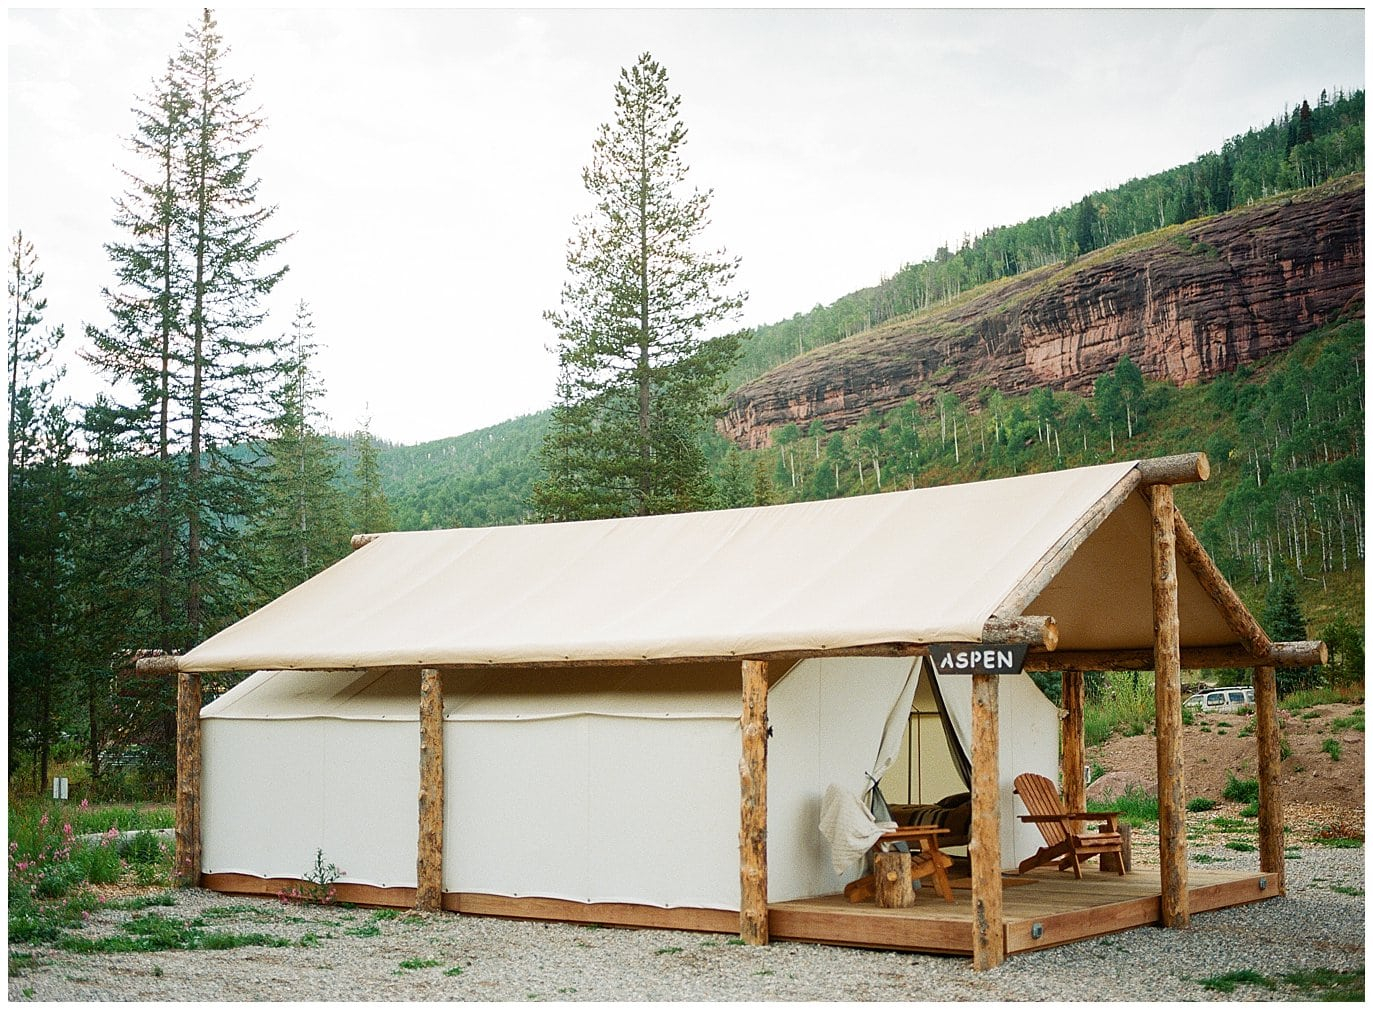 Piney River Ranch Clamping Tents photo